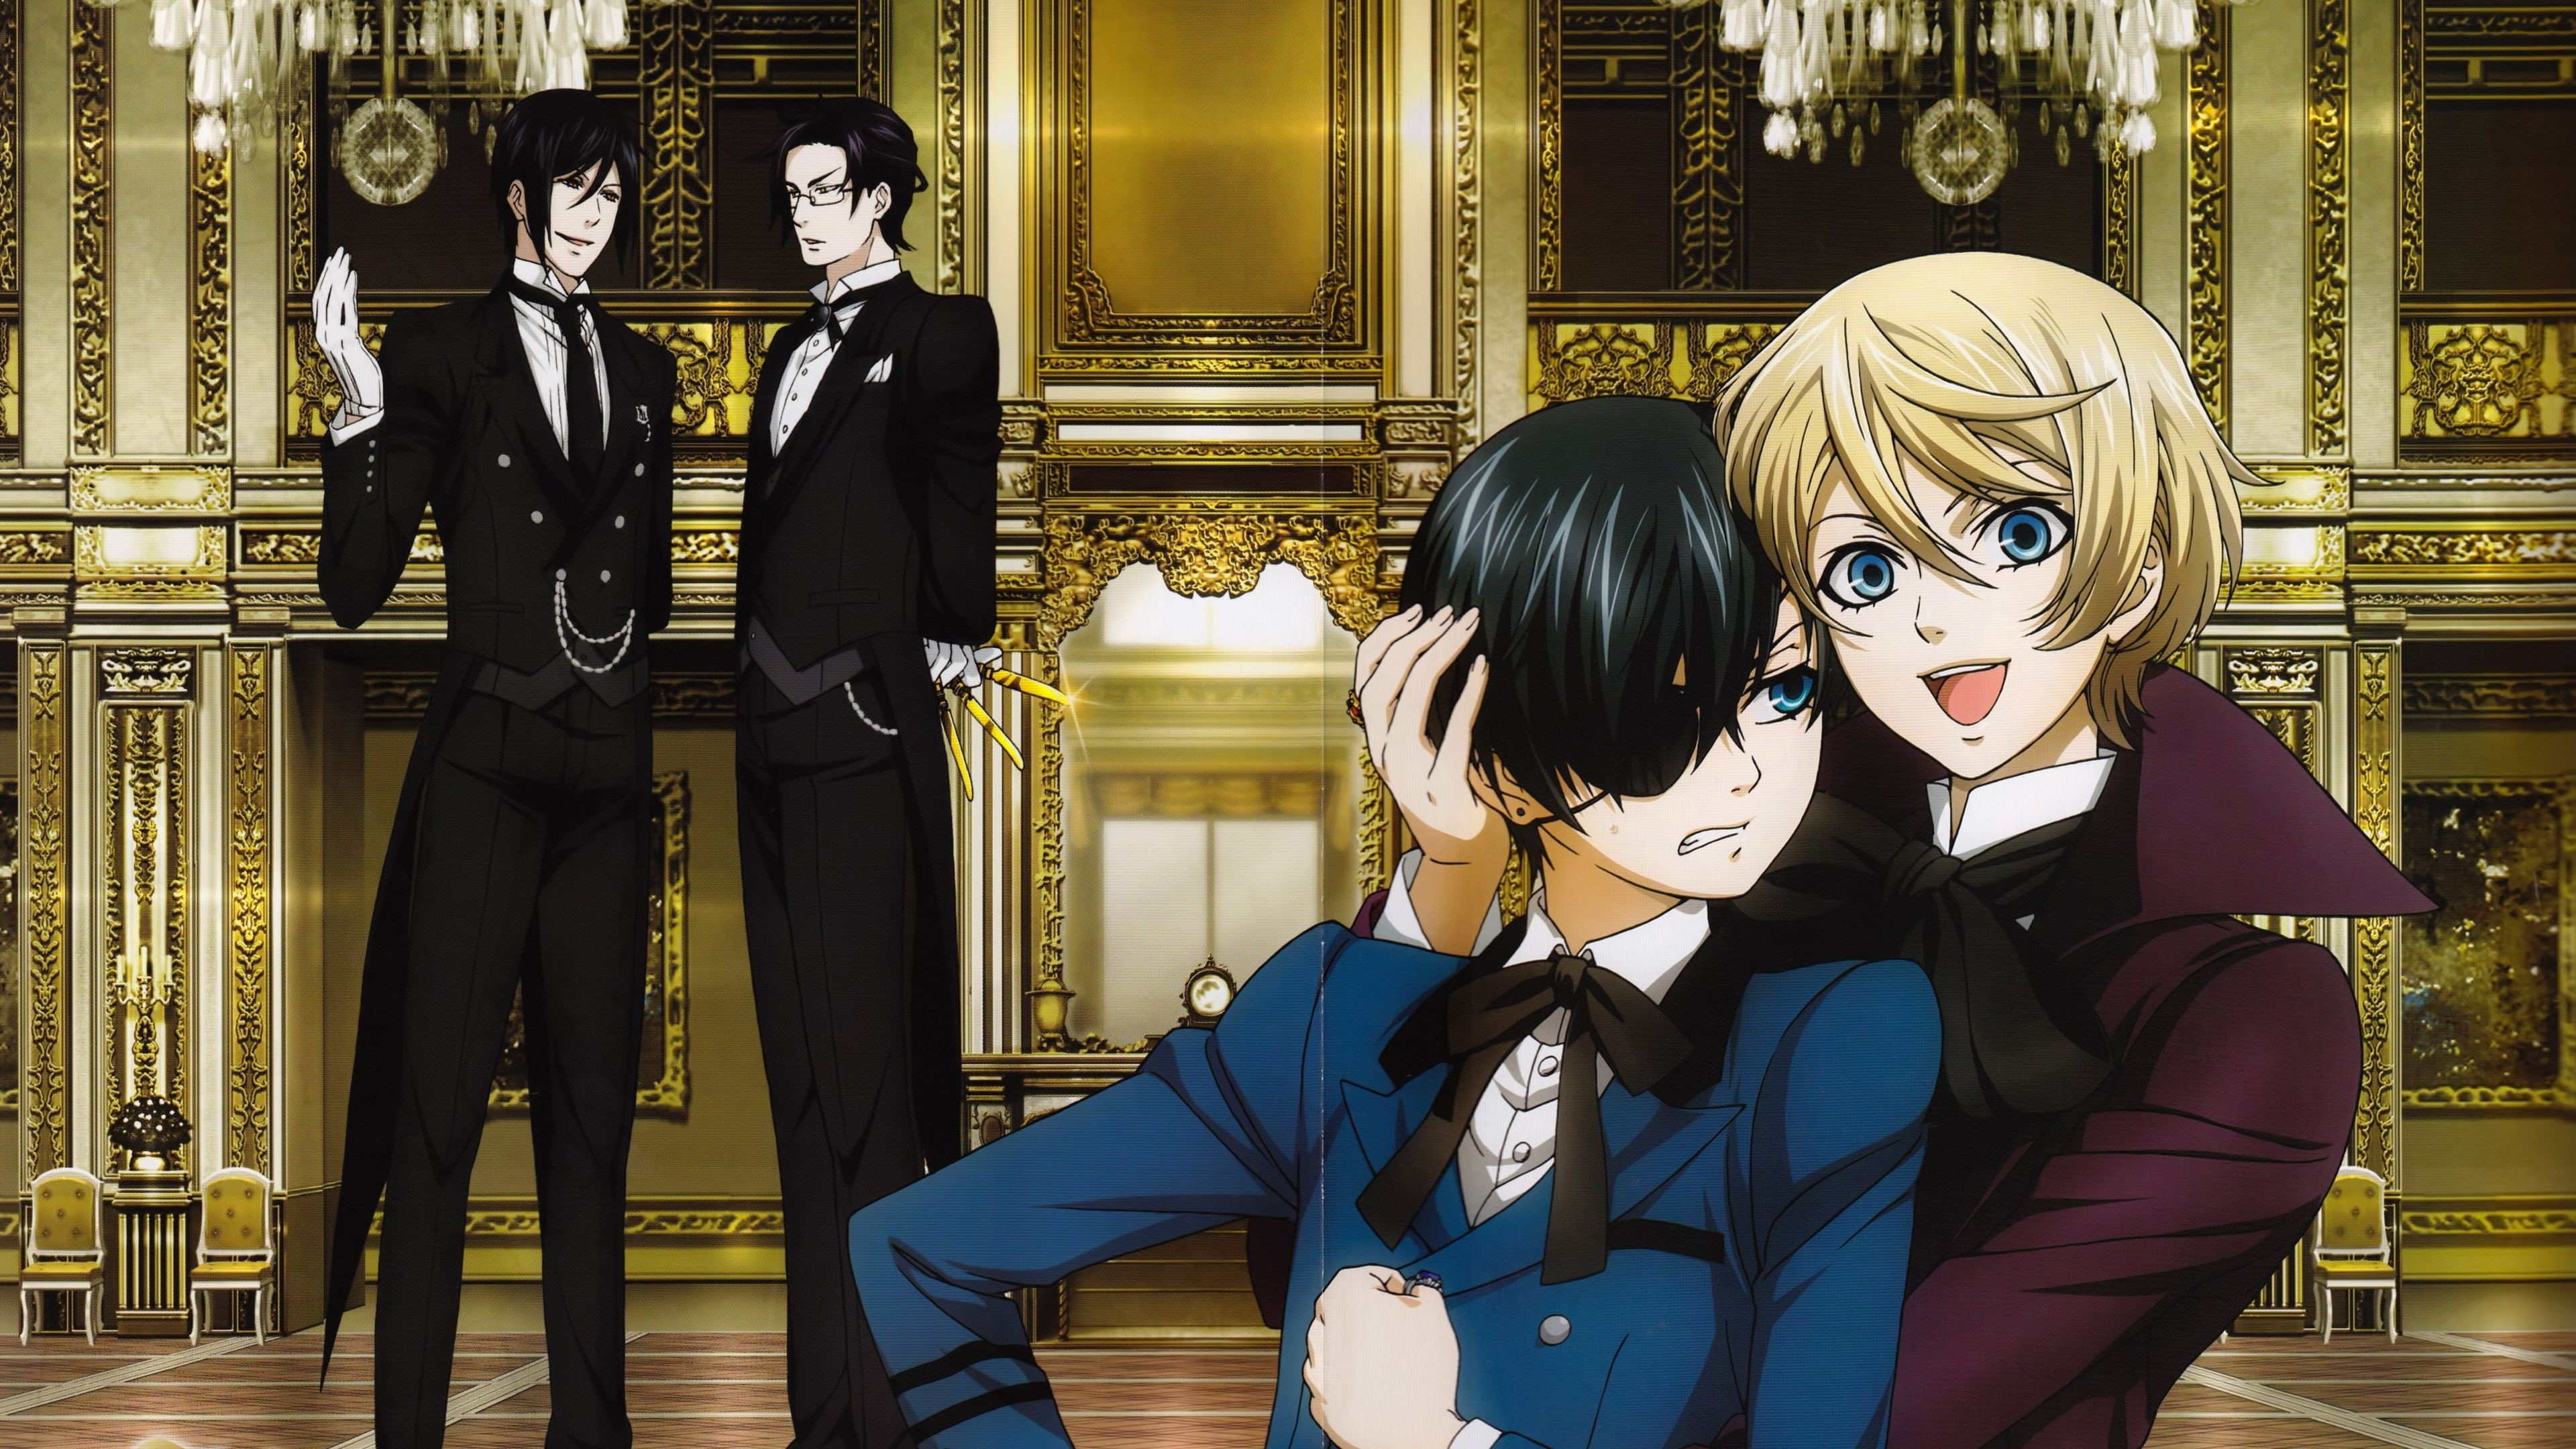 2767x1960 New Black Butler Undertaker Images View 234832290 Wallpapers